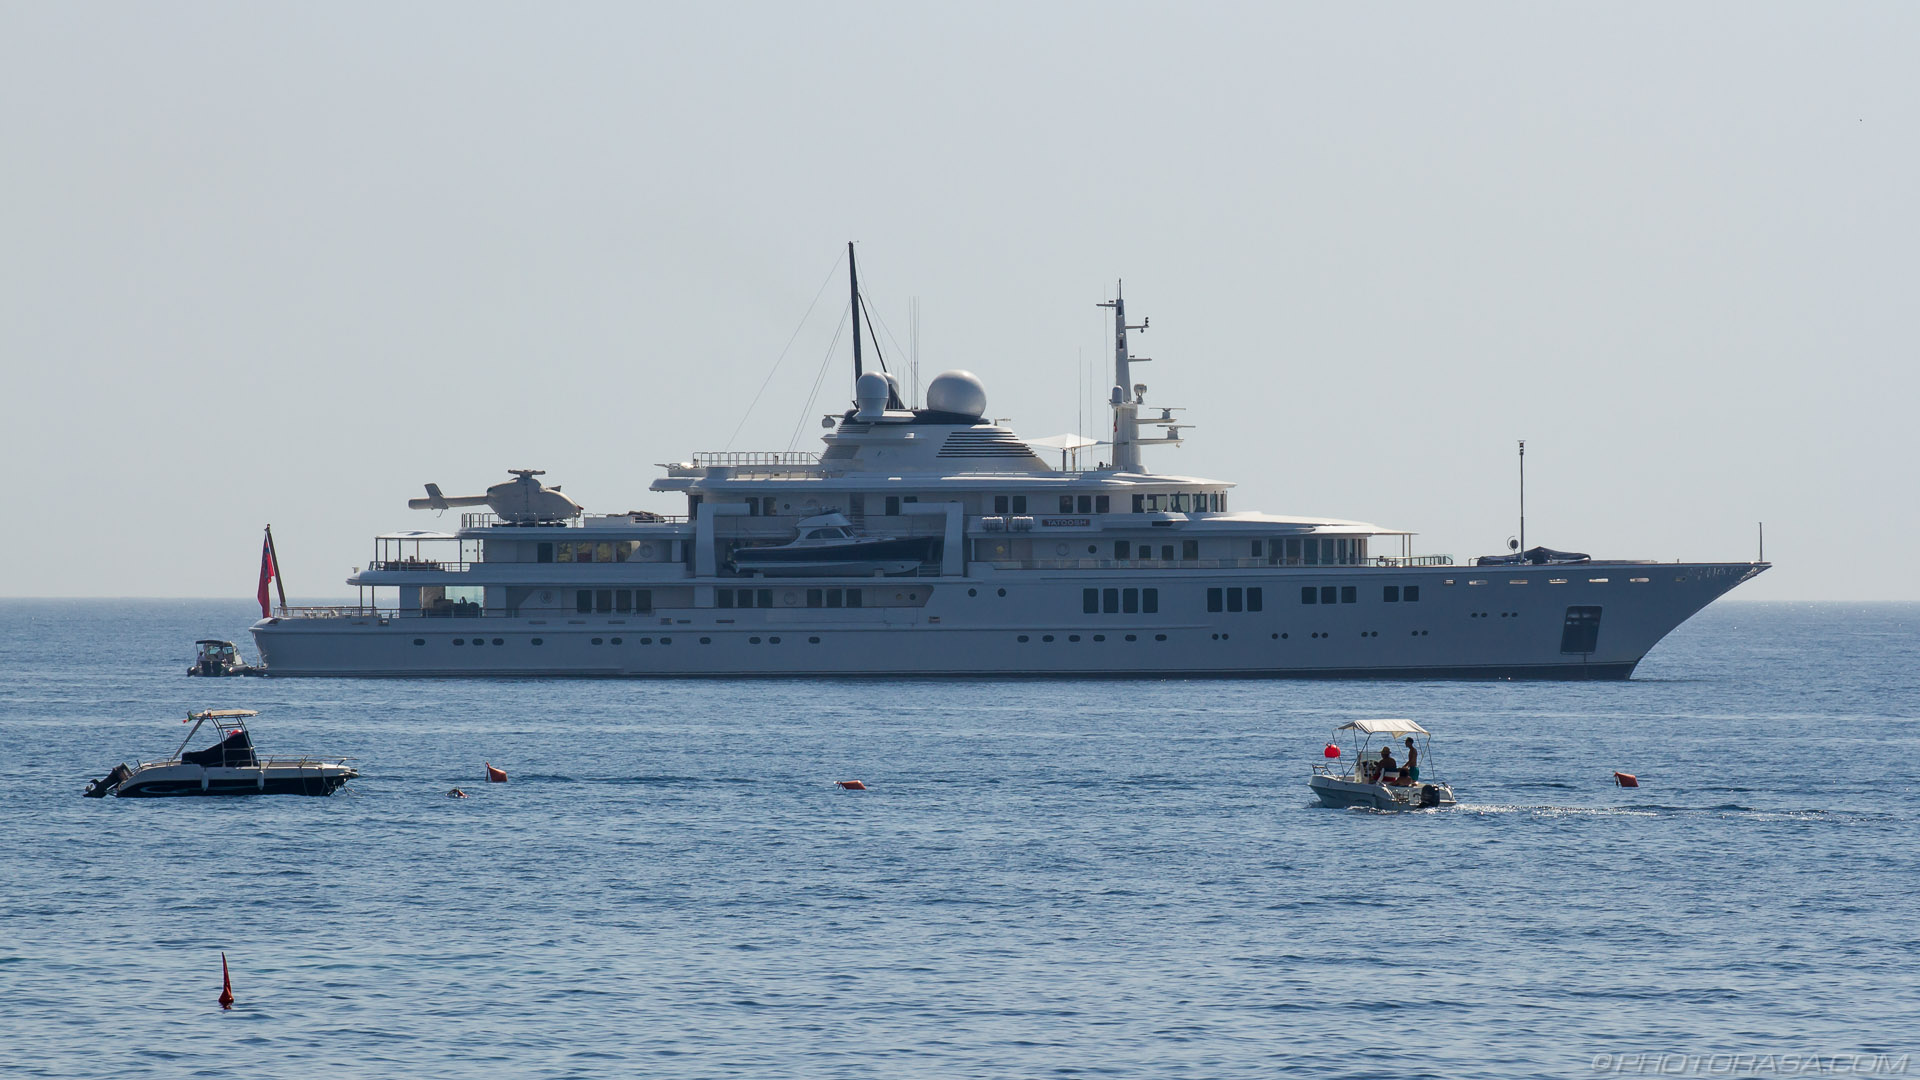 https://photorasa.com/giardini-naxos/tatoosh-super-yacht/